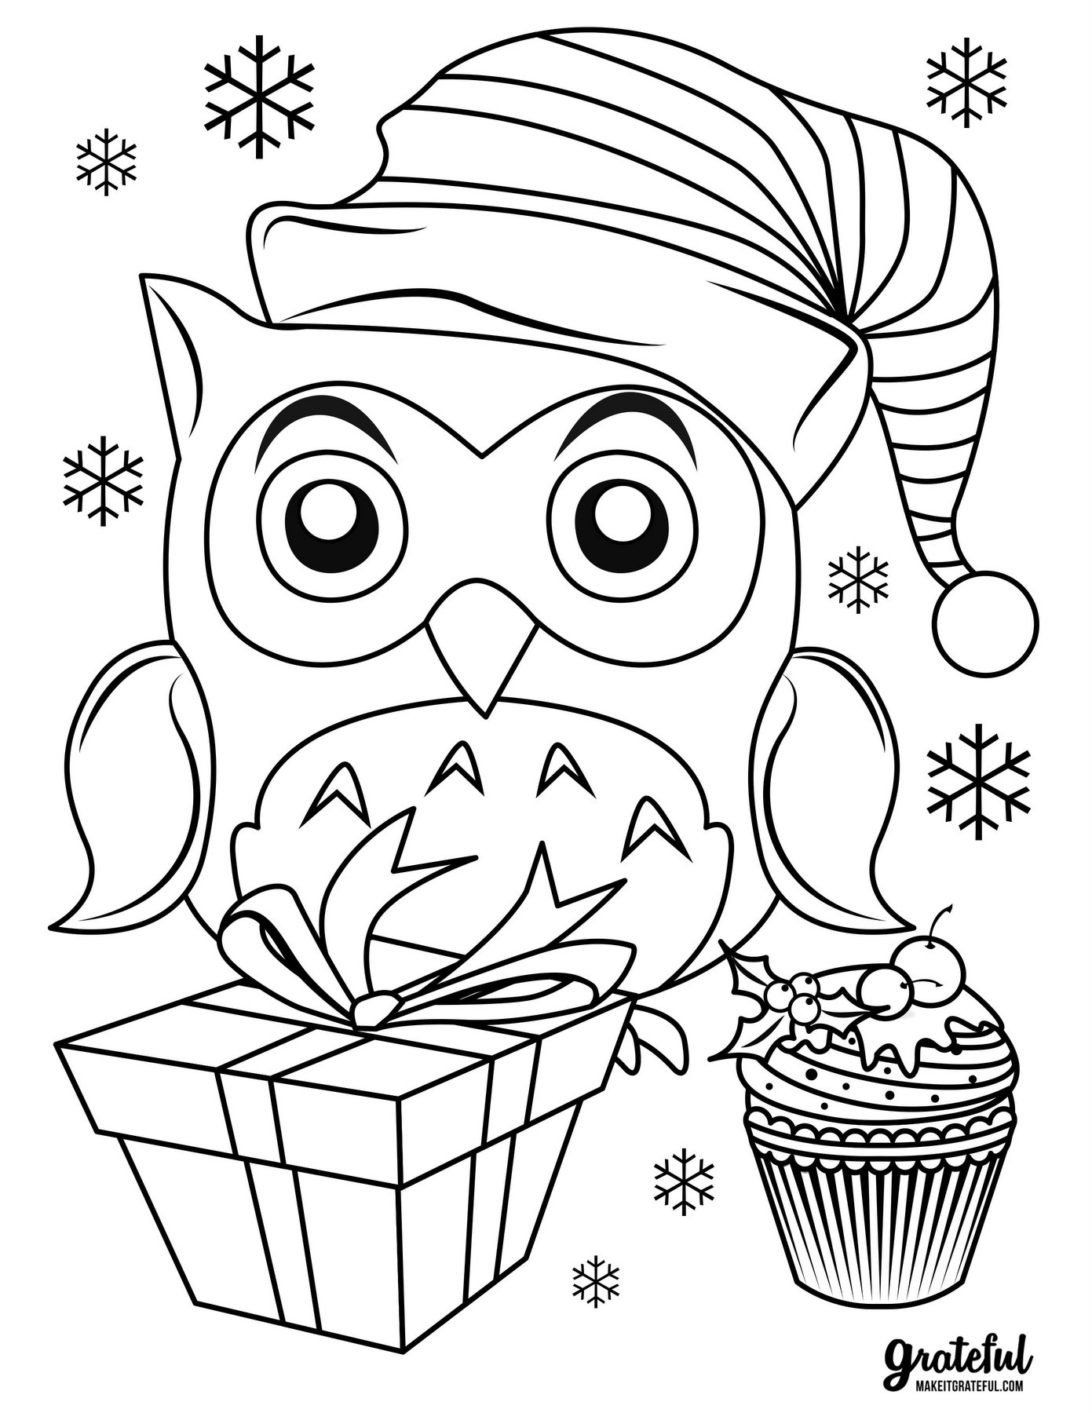 Kids On Line Coloring Pages Coloring Pages Coloring Christmas Your Kids Colouring For In 2020 Owl Coloring Pages Free Christmas Coloring Pages Cute Coloring Pages